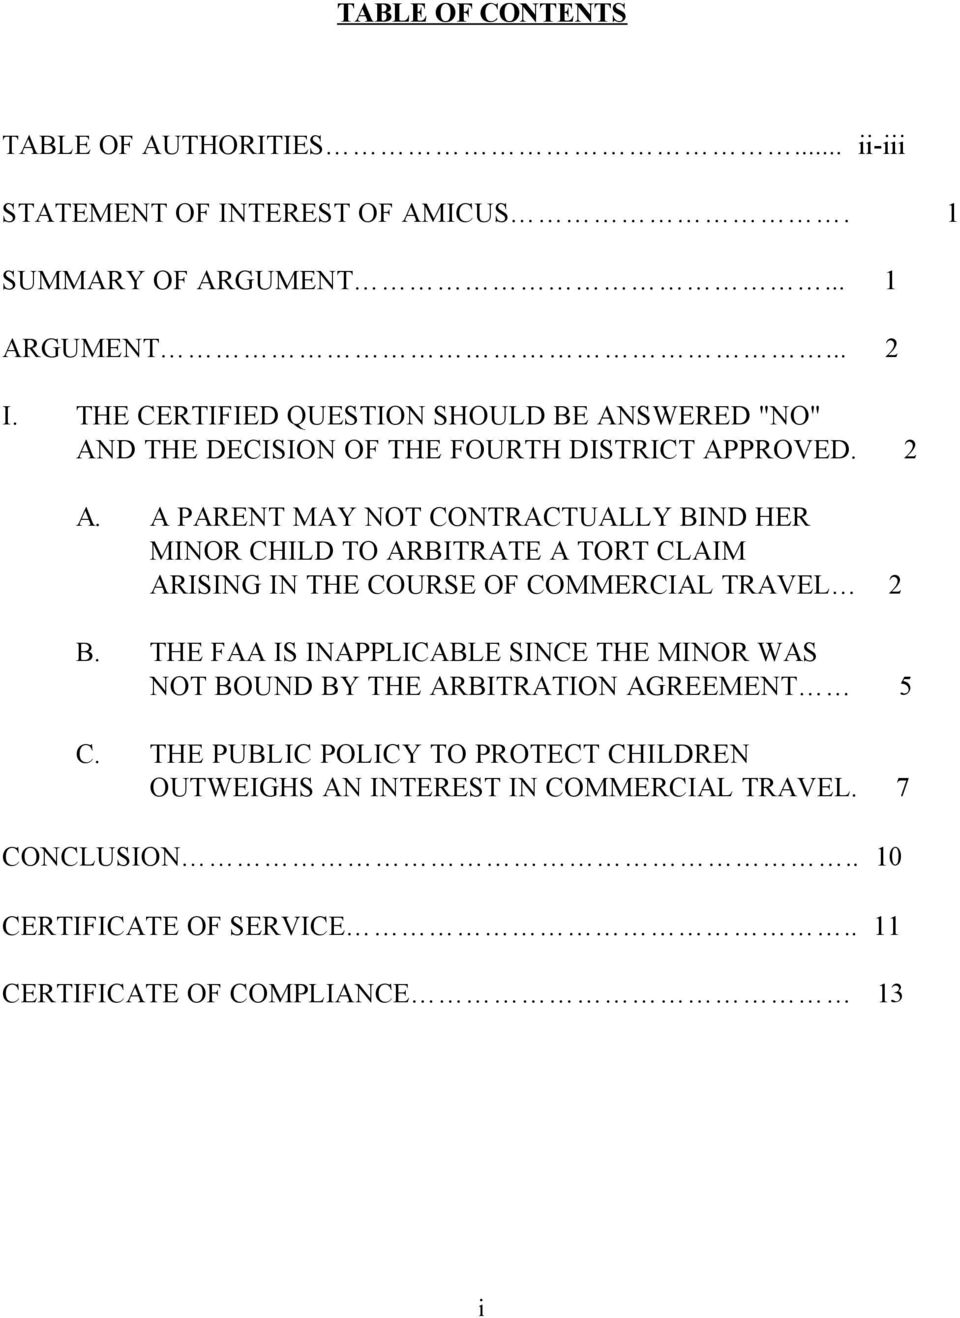 A PARENT MAY NOT CONTRACTUALLY BIND HER MINOR CHILD TO ARBITRATE A TORT CLAIM ARISING IN THE COURSE OF COMMERCIAL TRAVEL 2 B.